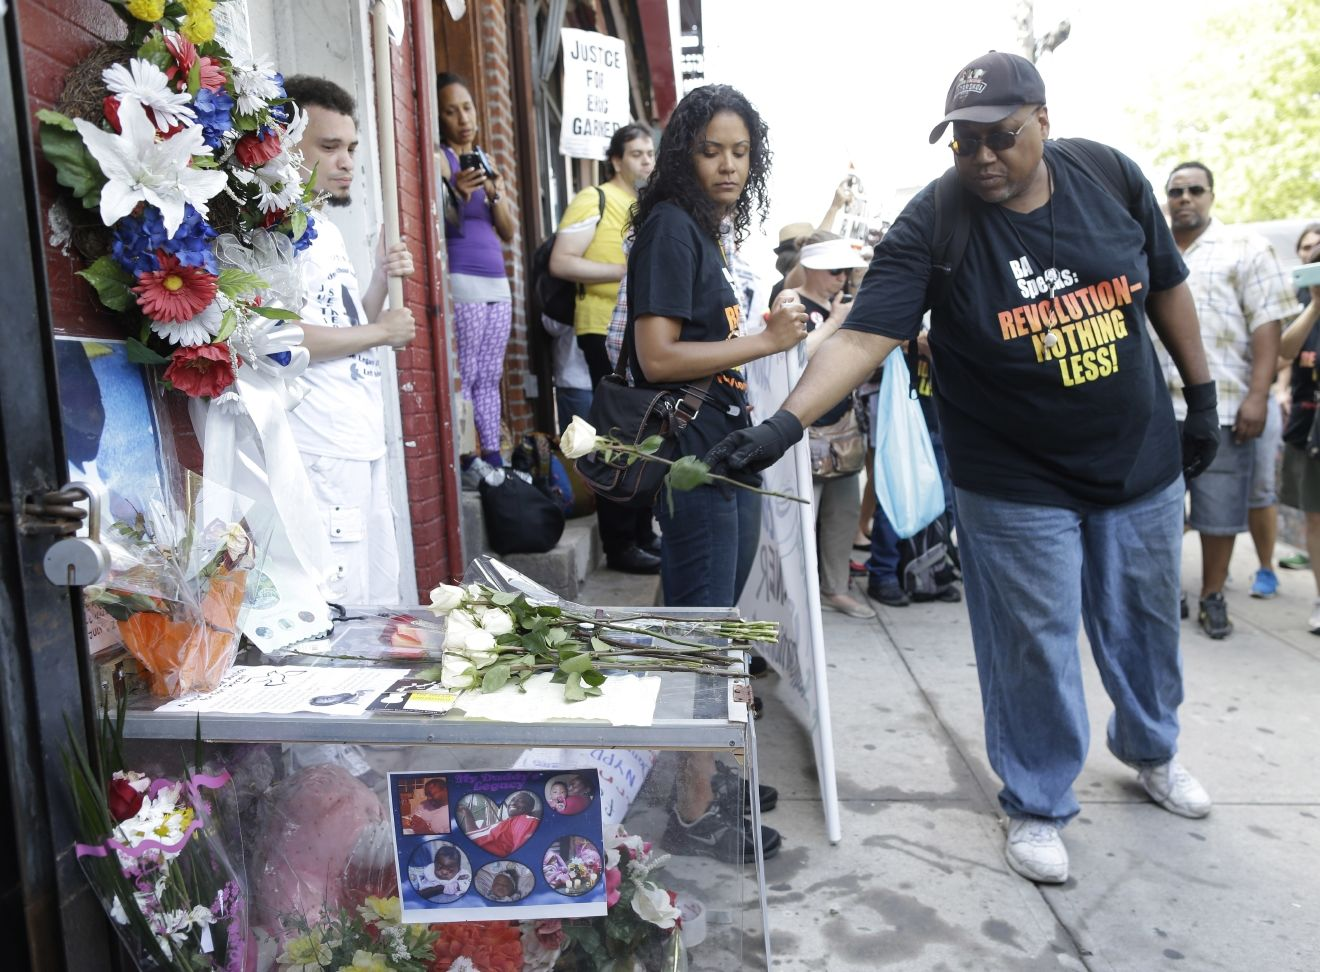 FILE - In this July 17, 2015 file photo, a man places a rose on a memorial for Eric Garner during a rally at the site of his fatal encounter with police in the Staten Island borough of New York. (AP Photo/Mary Altaffer, File)